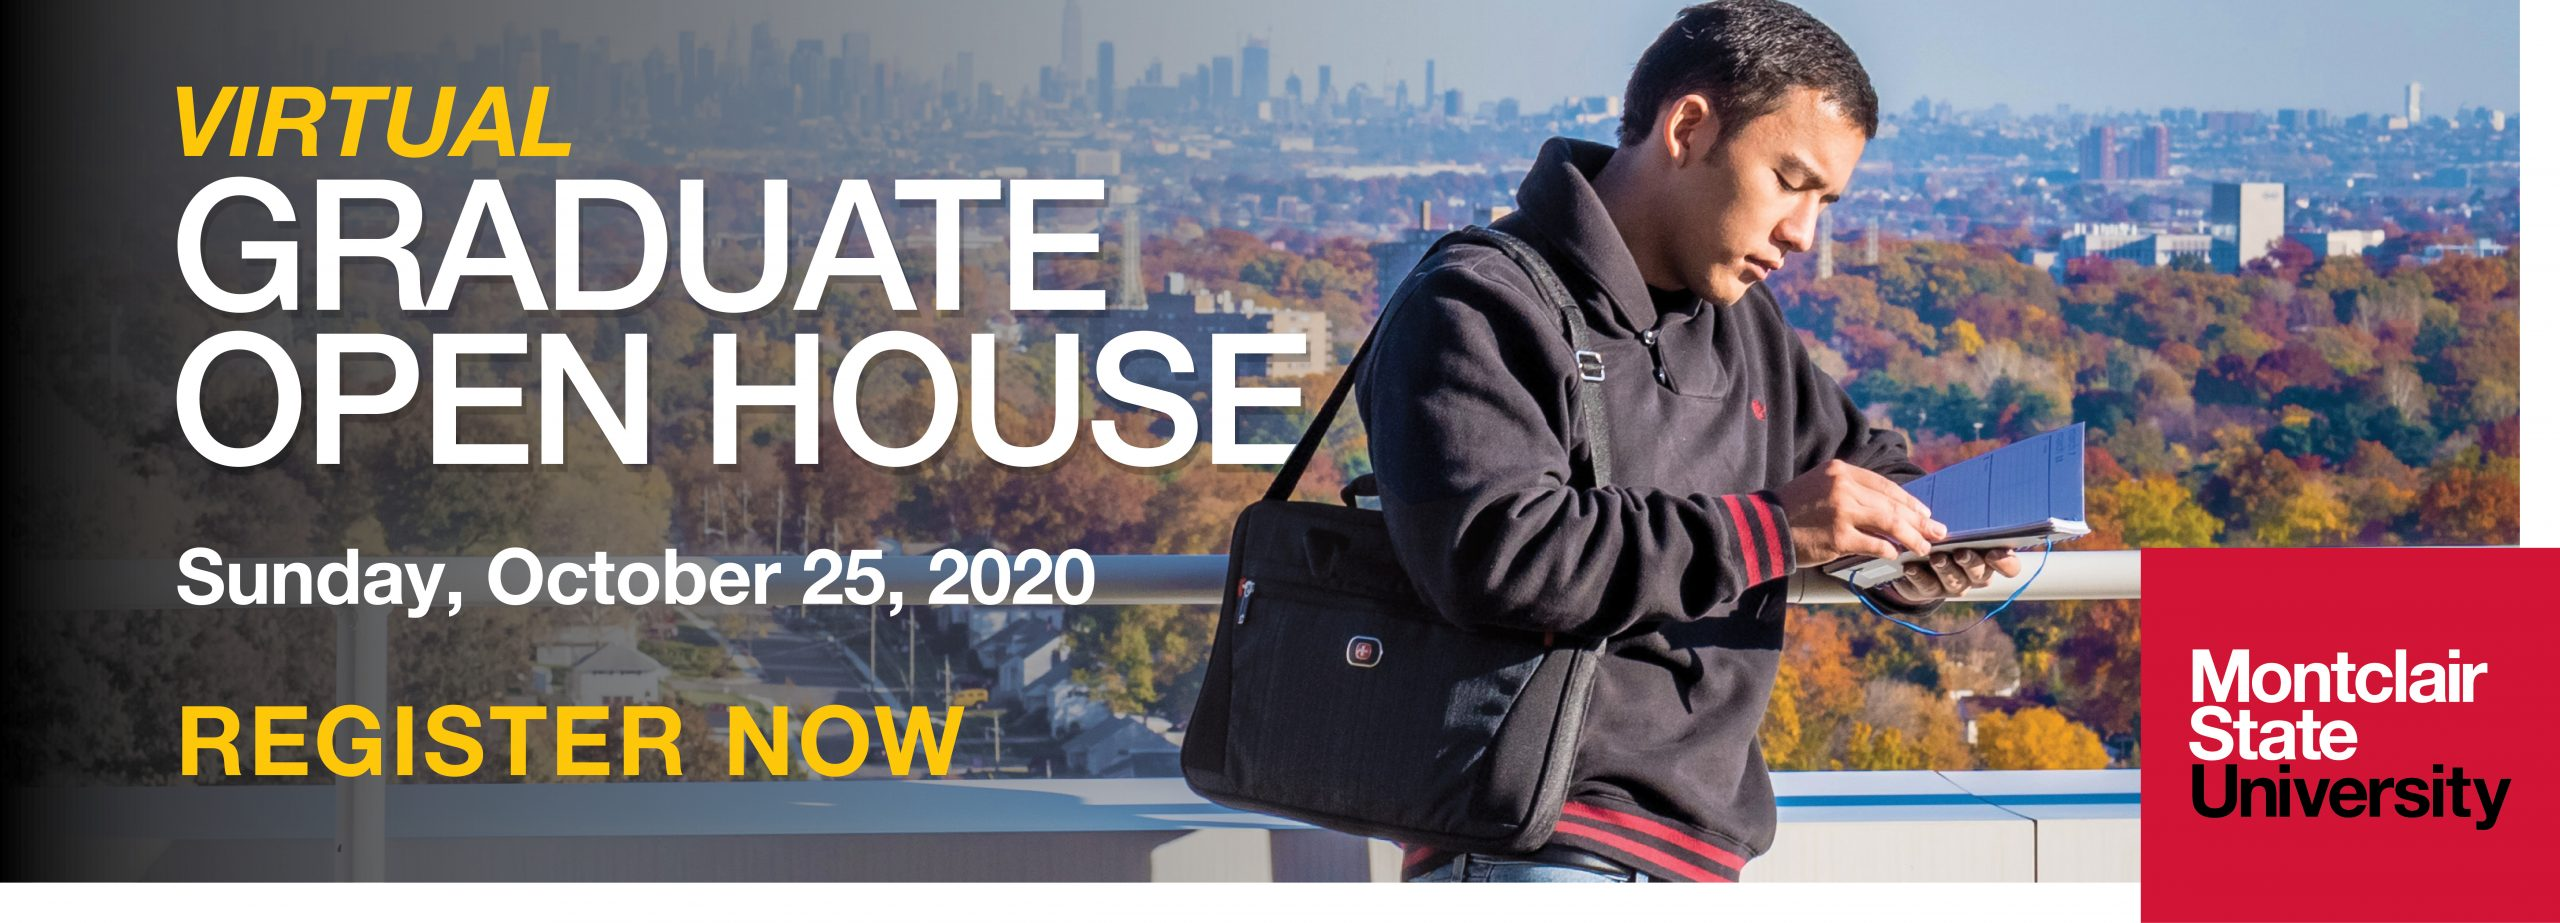 Fall 2020 Virtual Graduate Open House at Montclair State